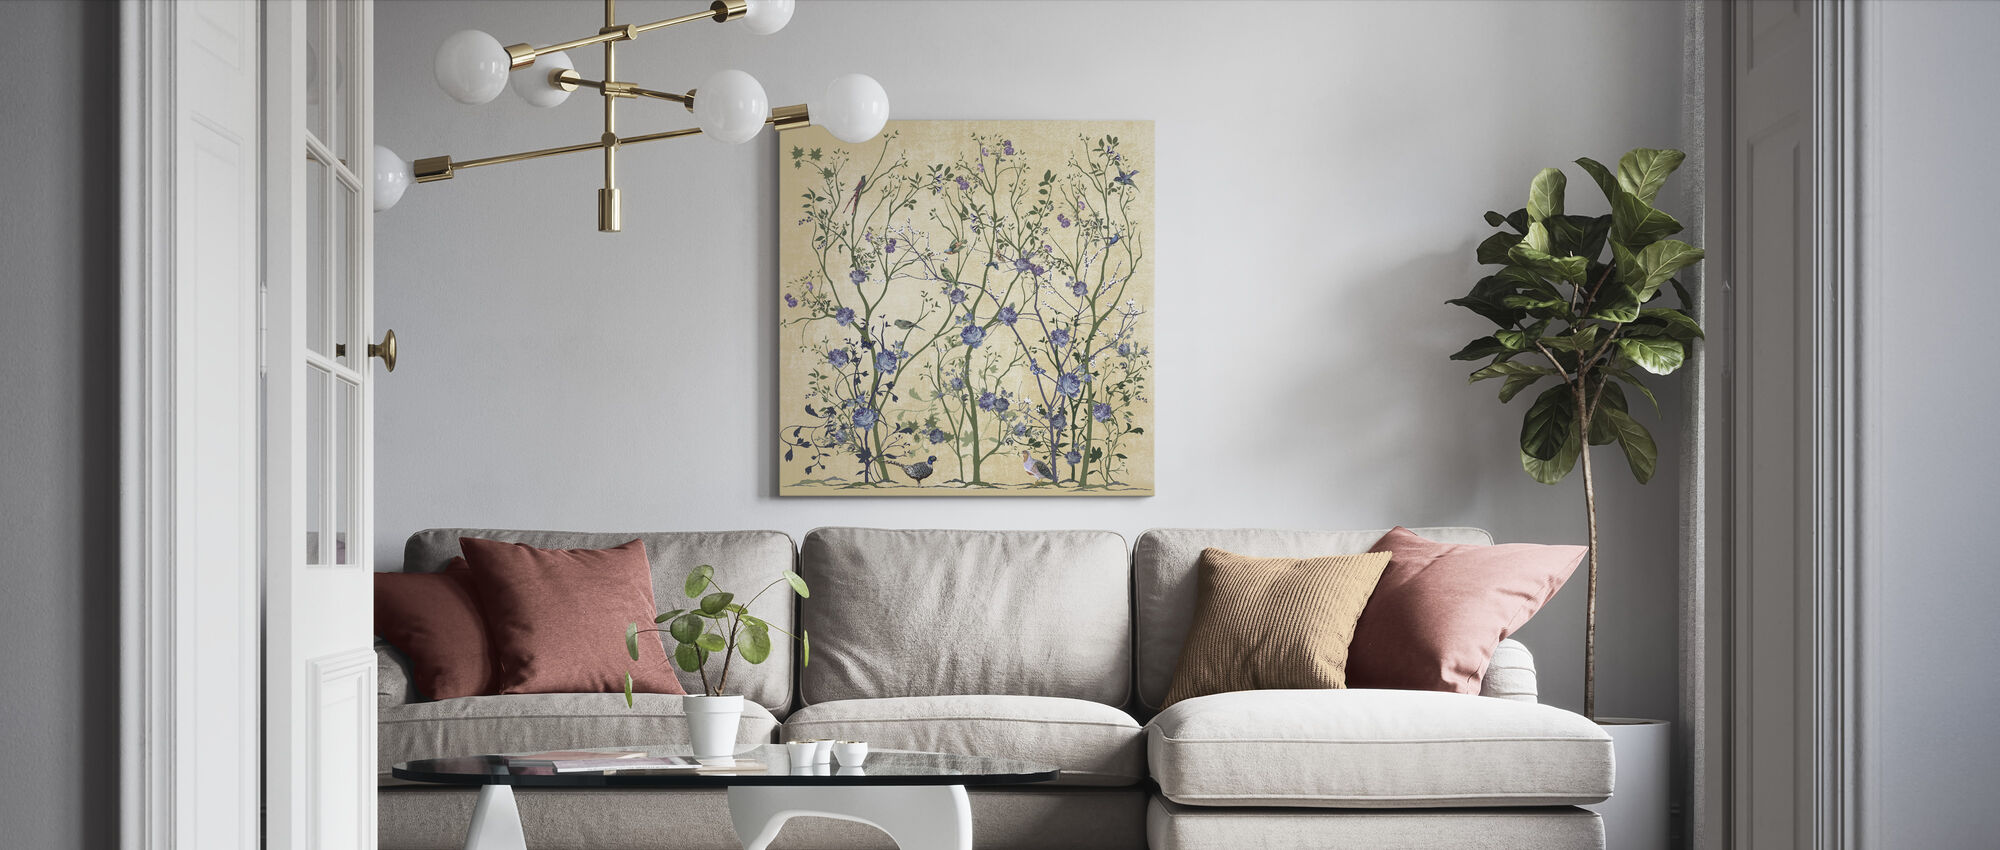 Blue Rose Bush - Canvas print - Living Room